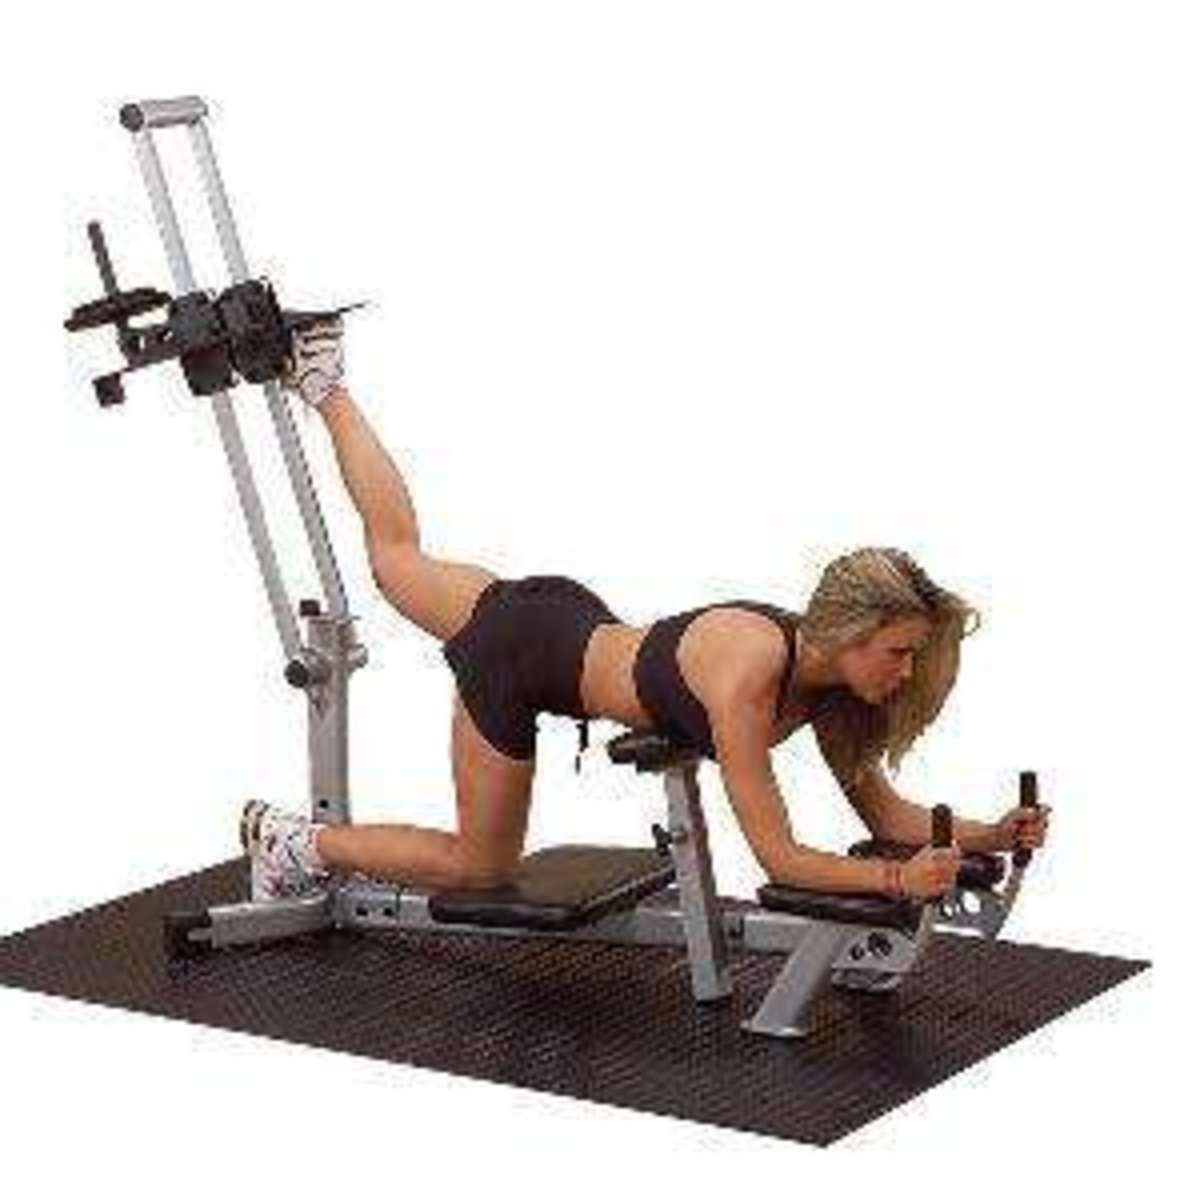 Exercuse machine that Target the Derrière with blond lady demonstrating